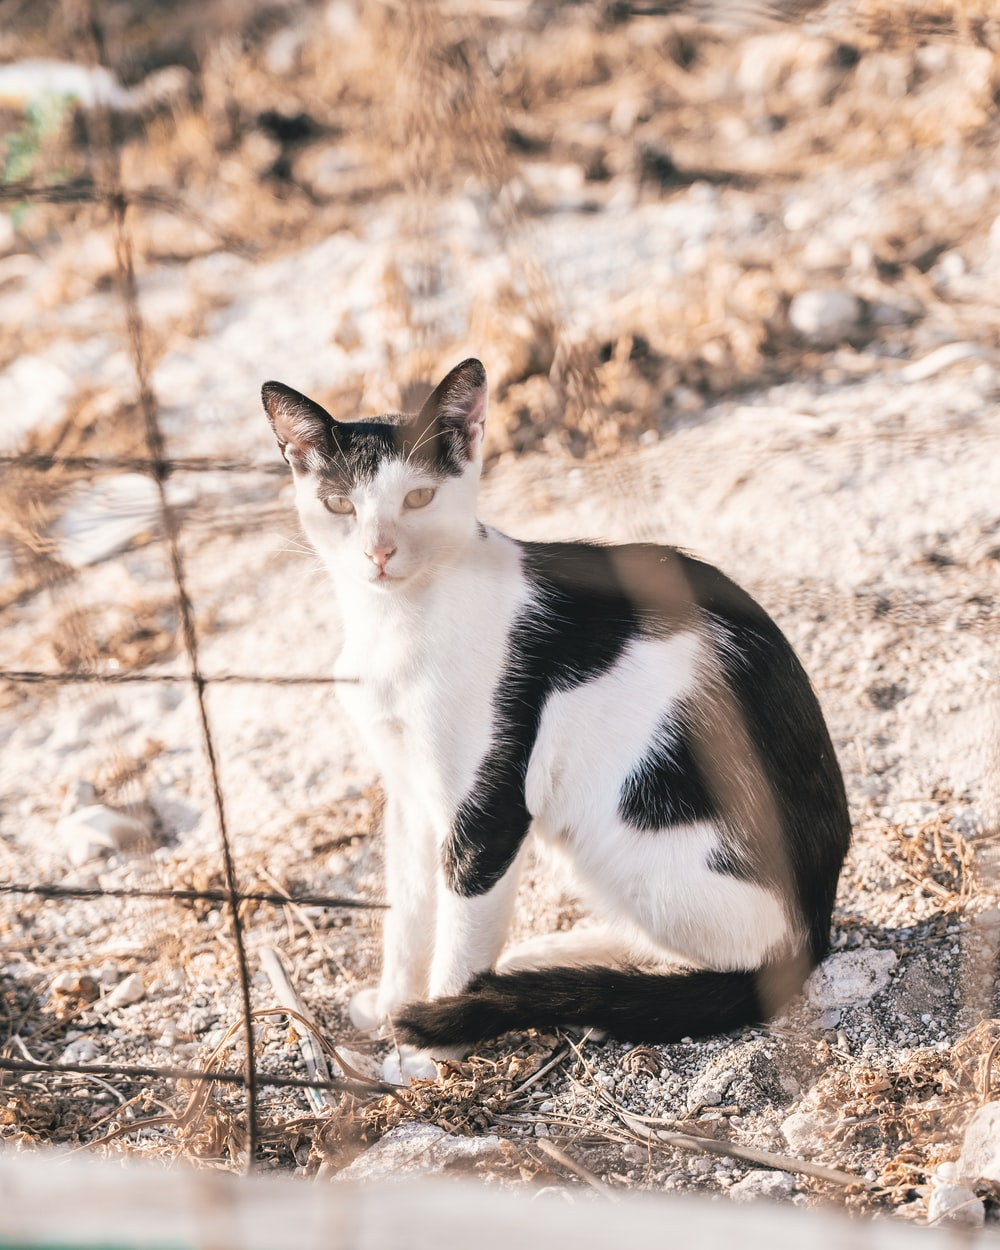 white and black cat on brown ground